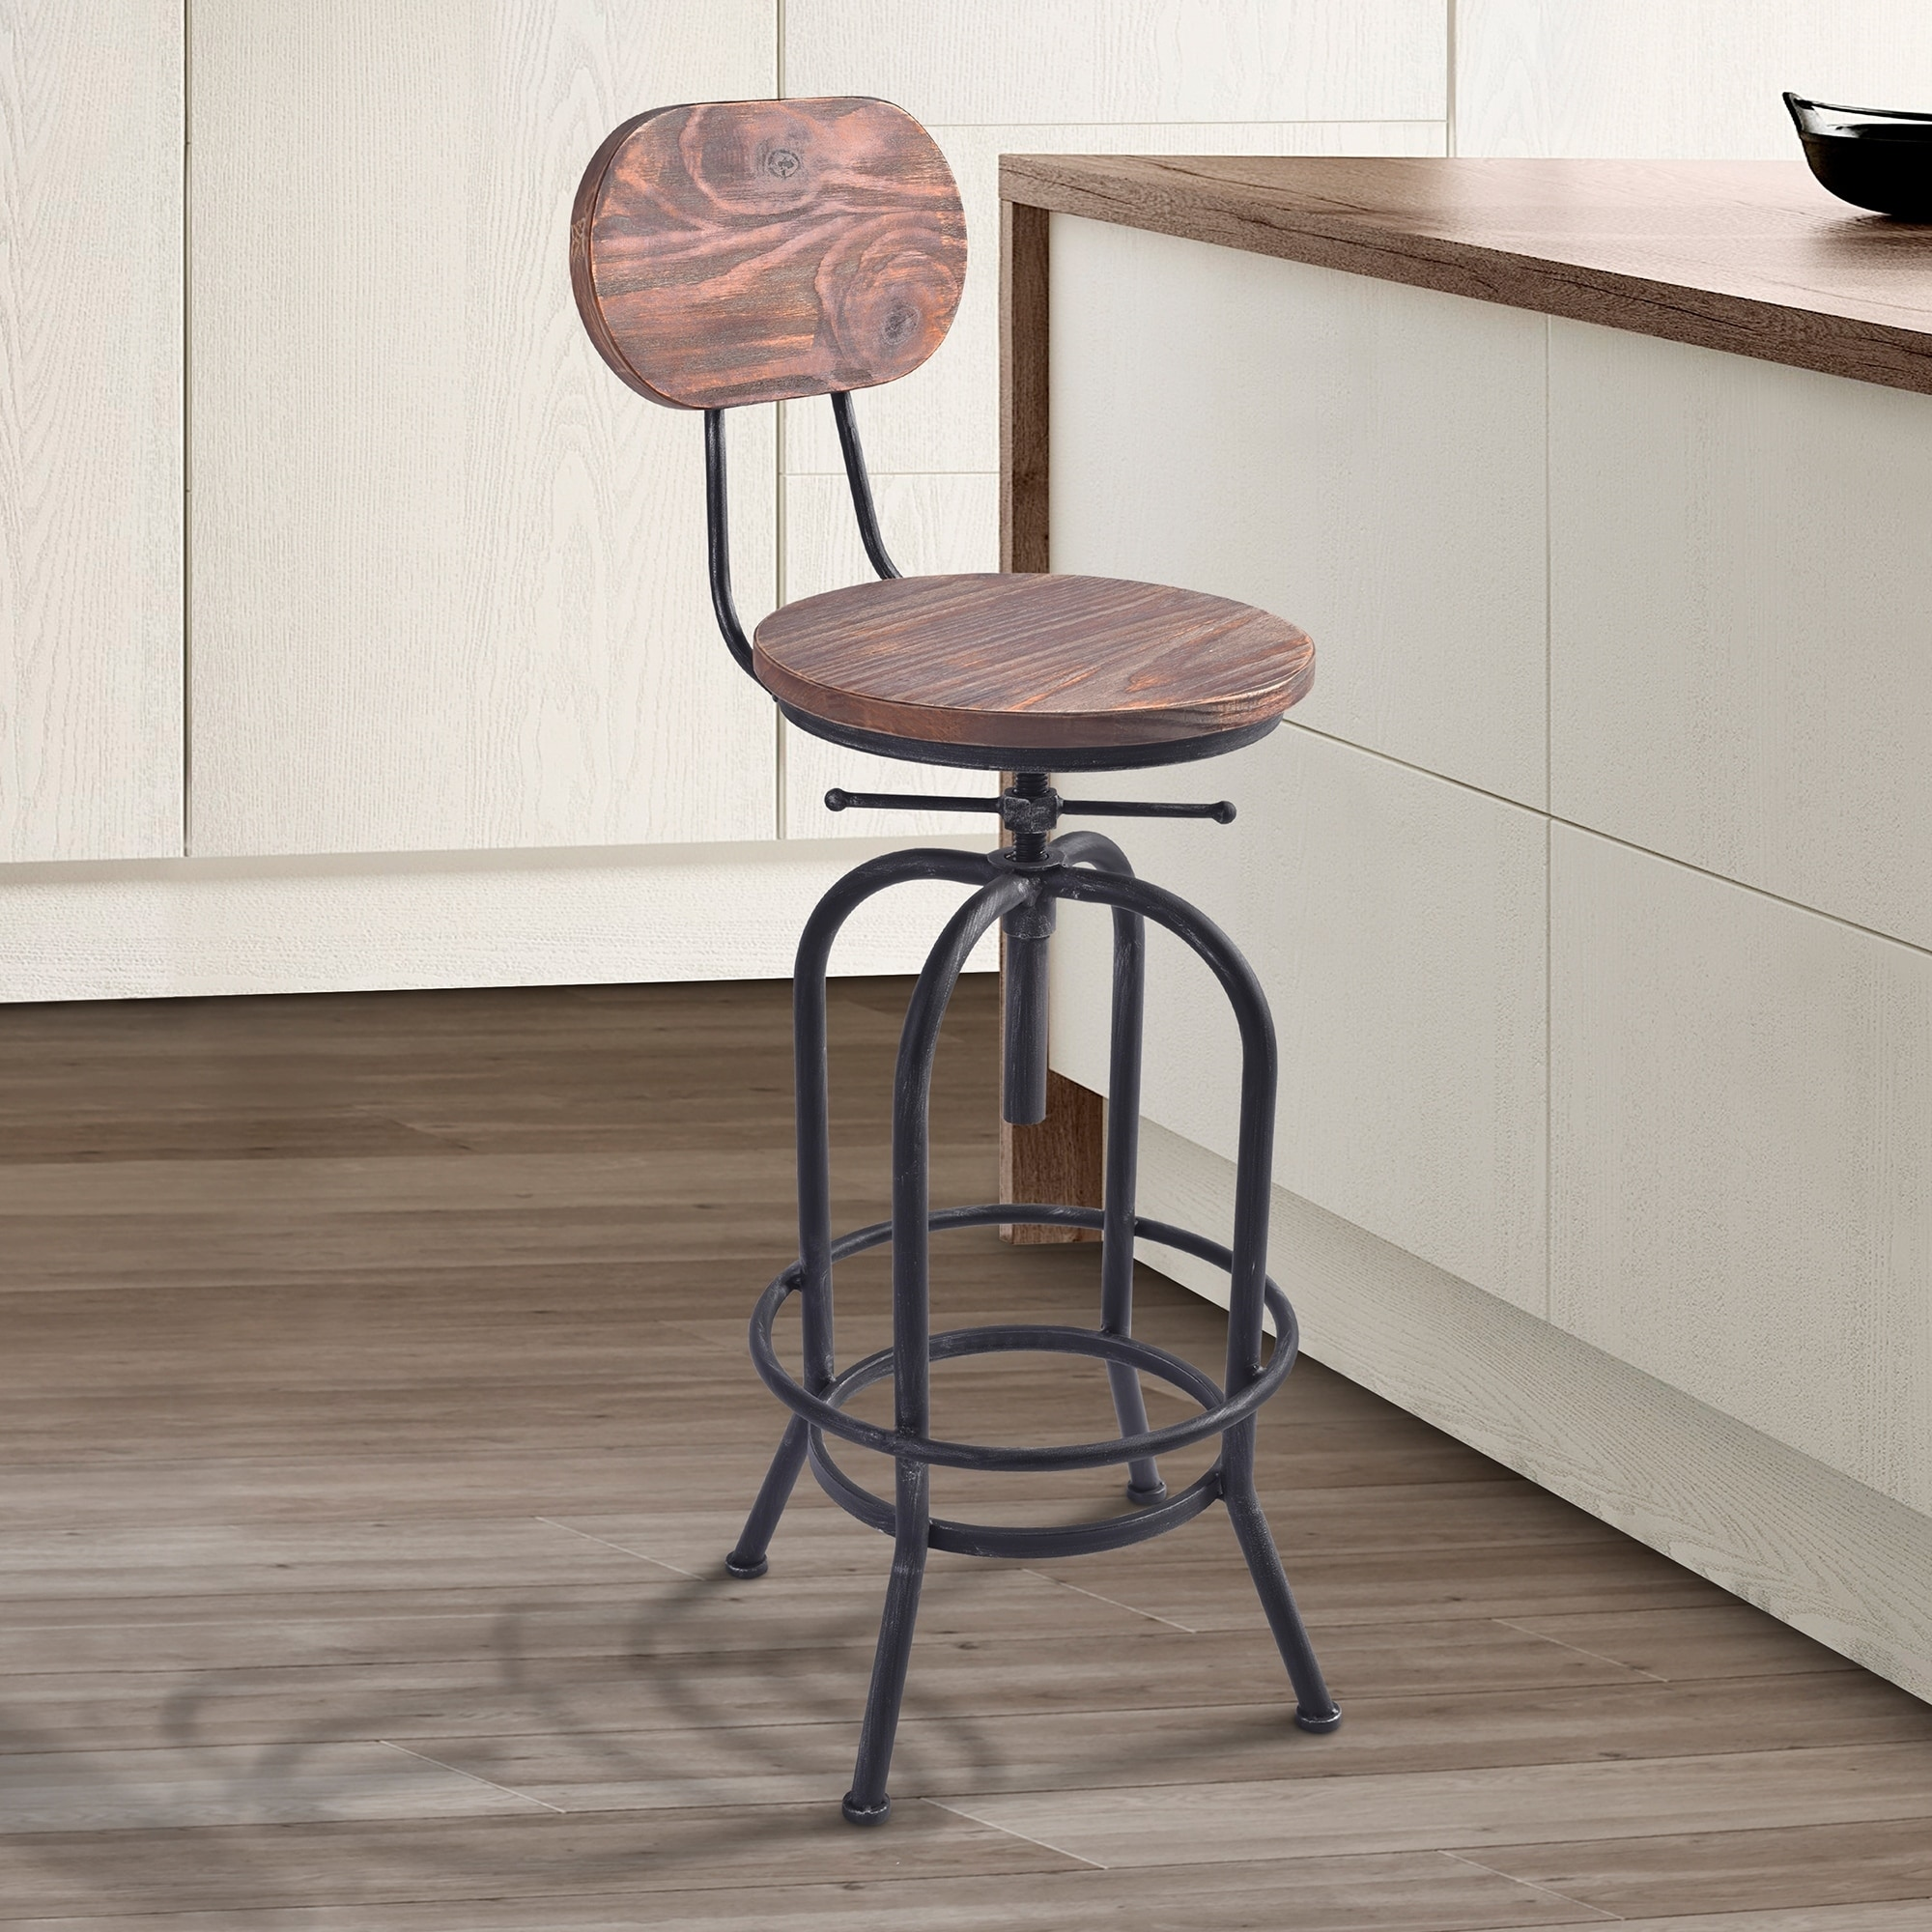 Shop Adele Industrial Adjustable Barstool In Silver Brushed Gray With  Rustic Pine Wood Seat And Back   Bar Height/counter Height   On Sale   Free  Shipping ...